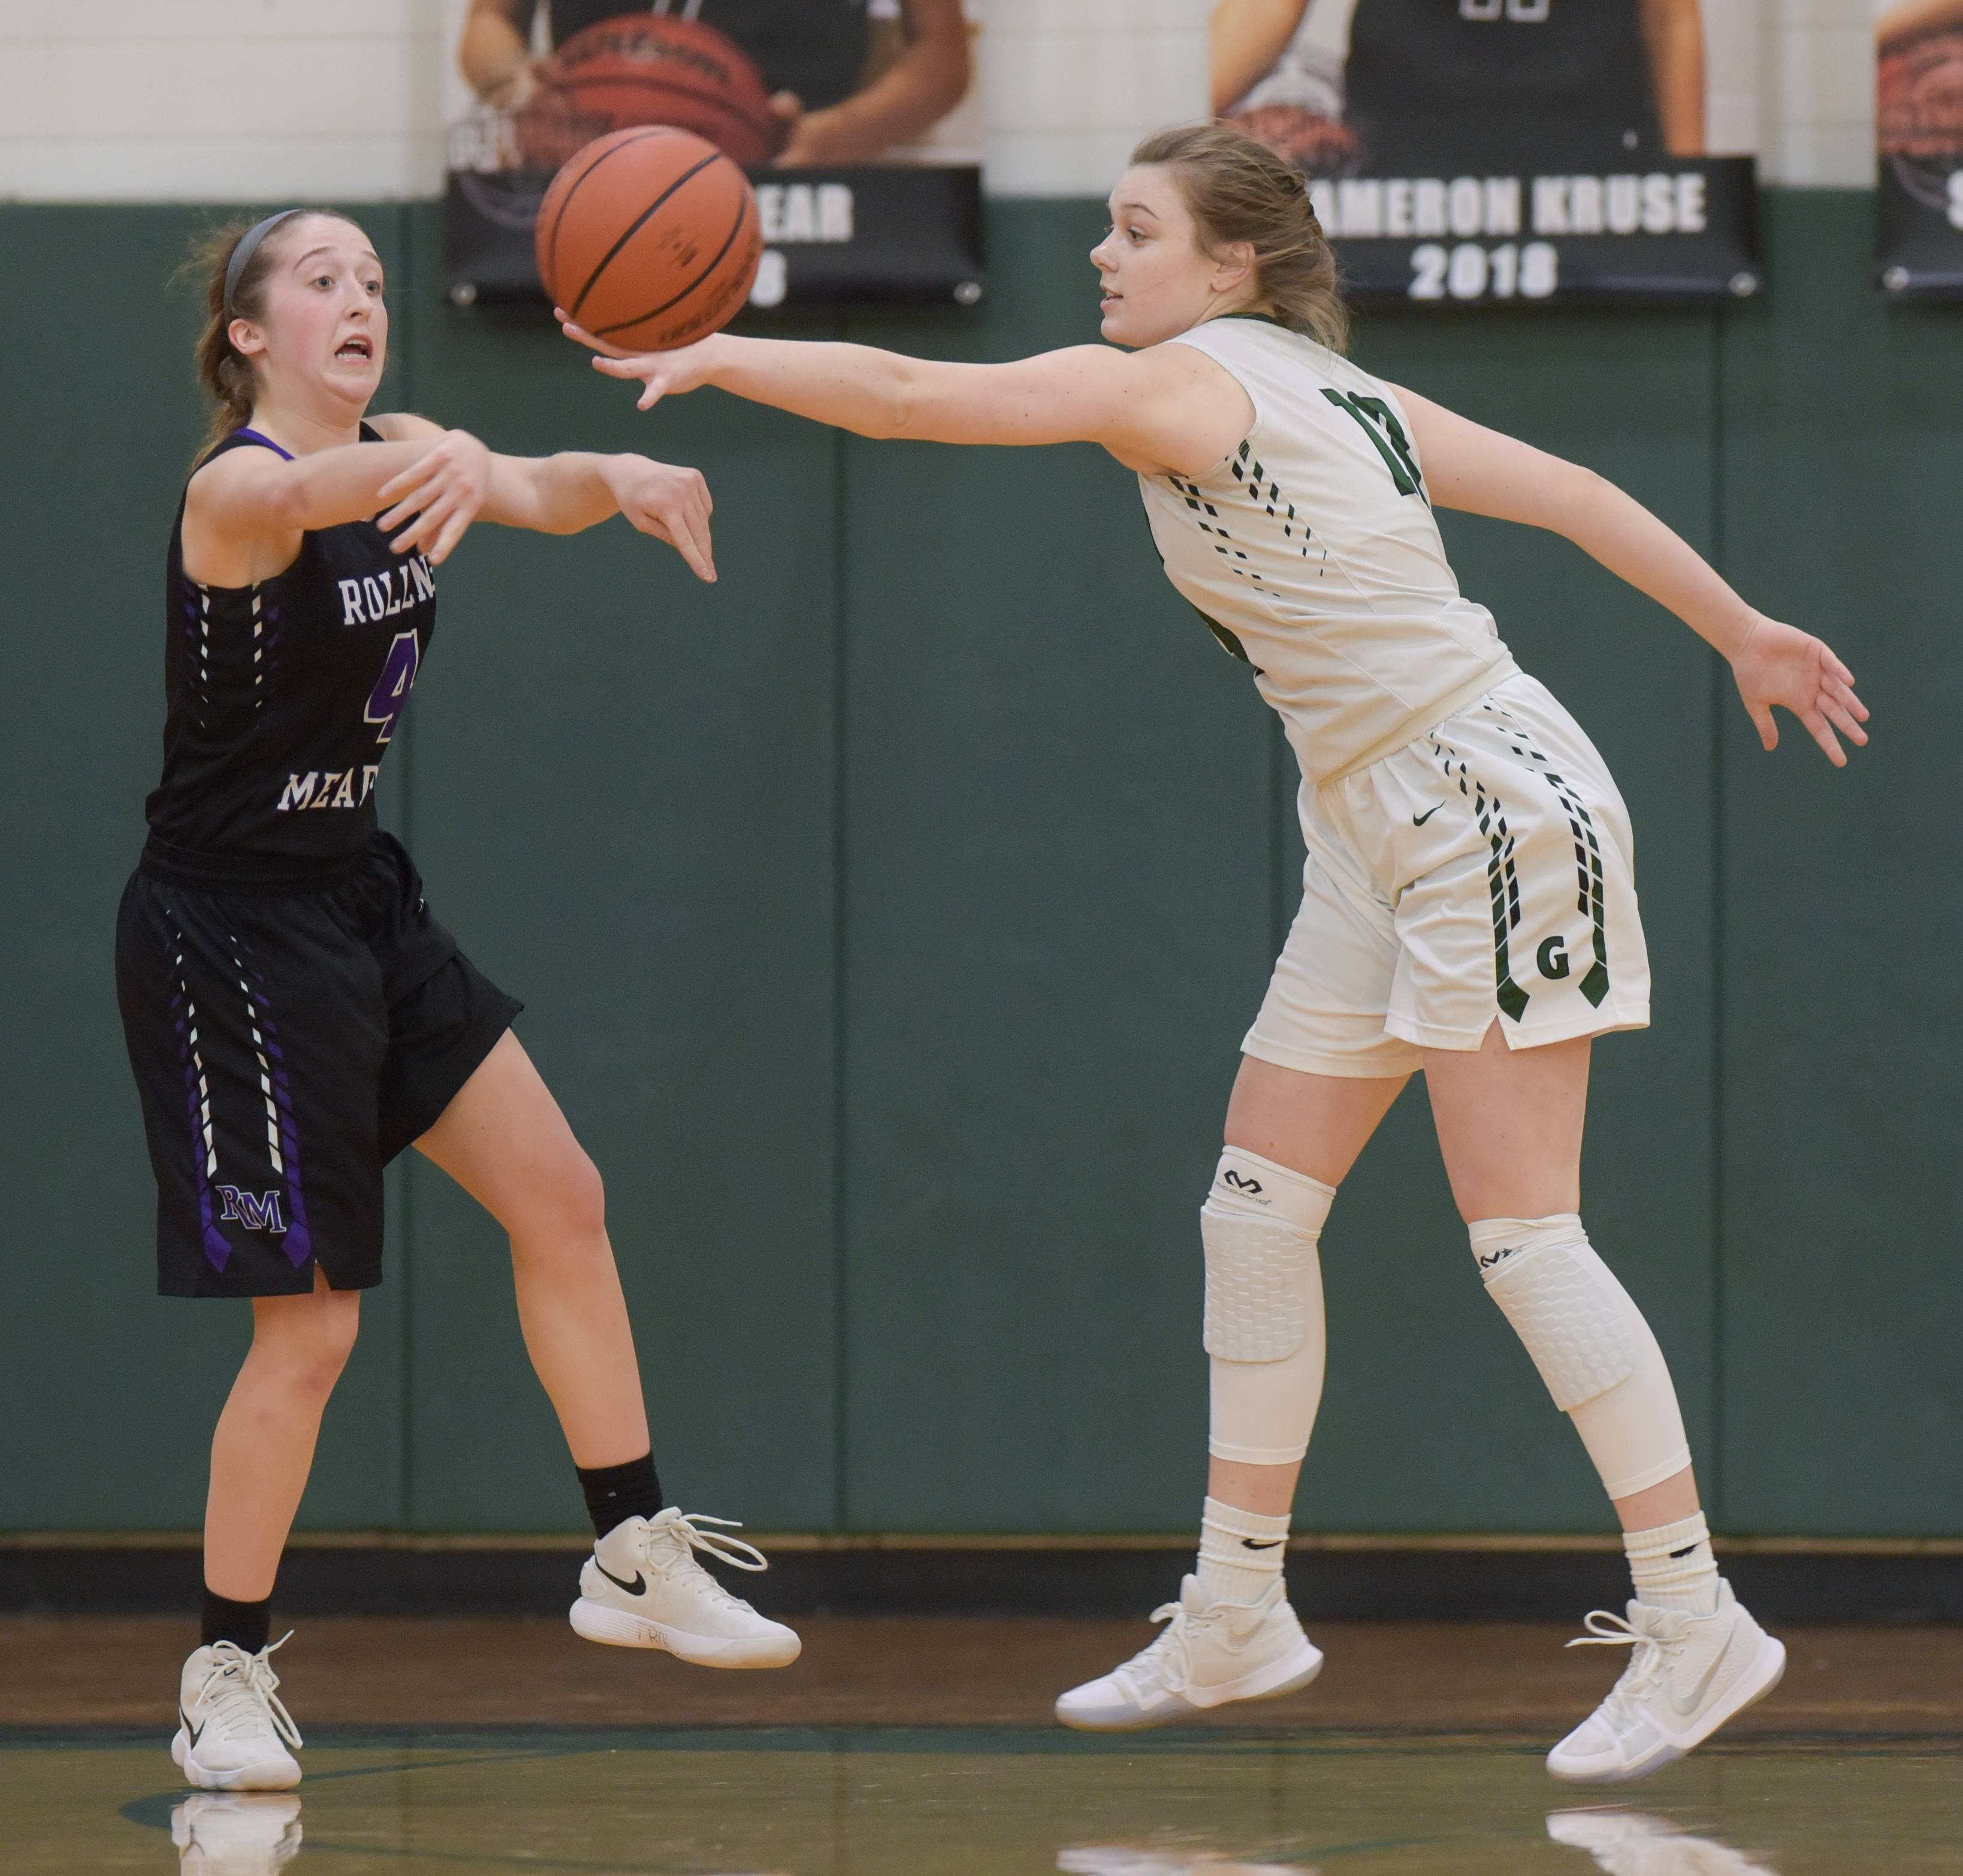 Rolling Meadows' Melissa Spiwak (4) attempts to pass the ball around Glenbard West's Maggie Stutelberg (13) during varsity girls basketball in Glen Ellyn on January 17, 2018.